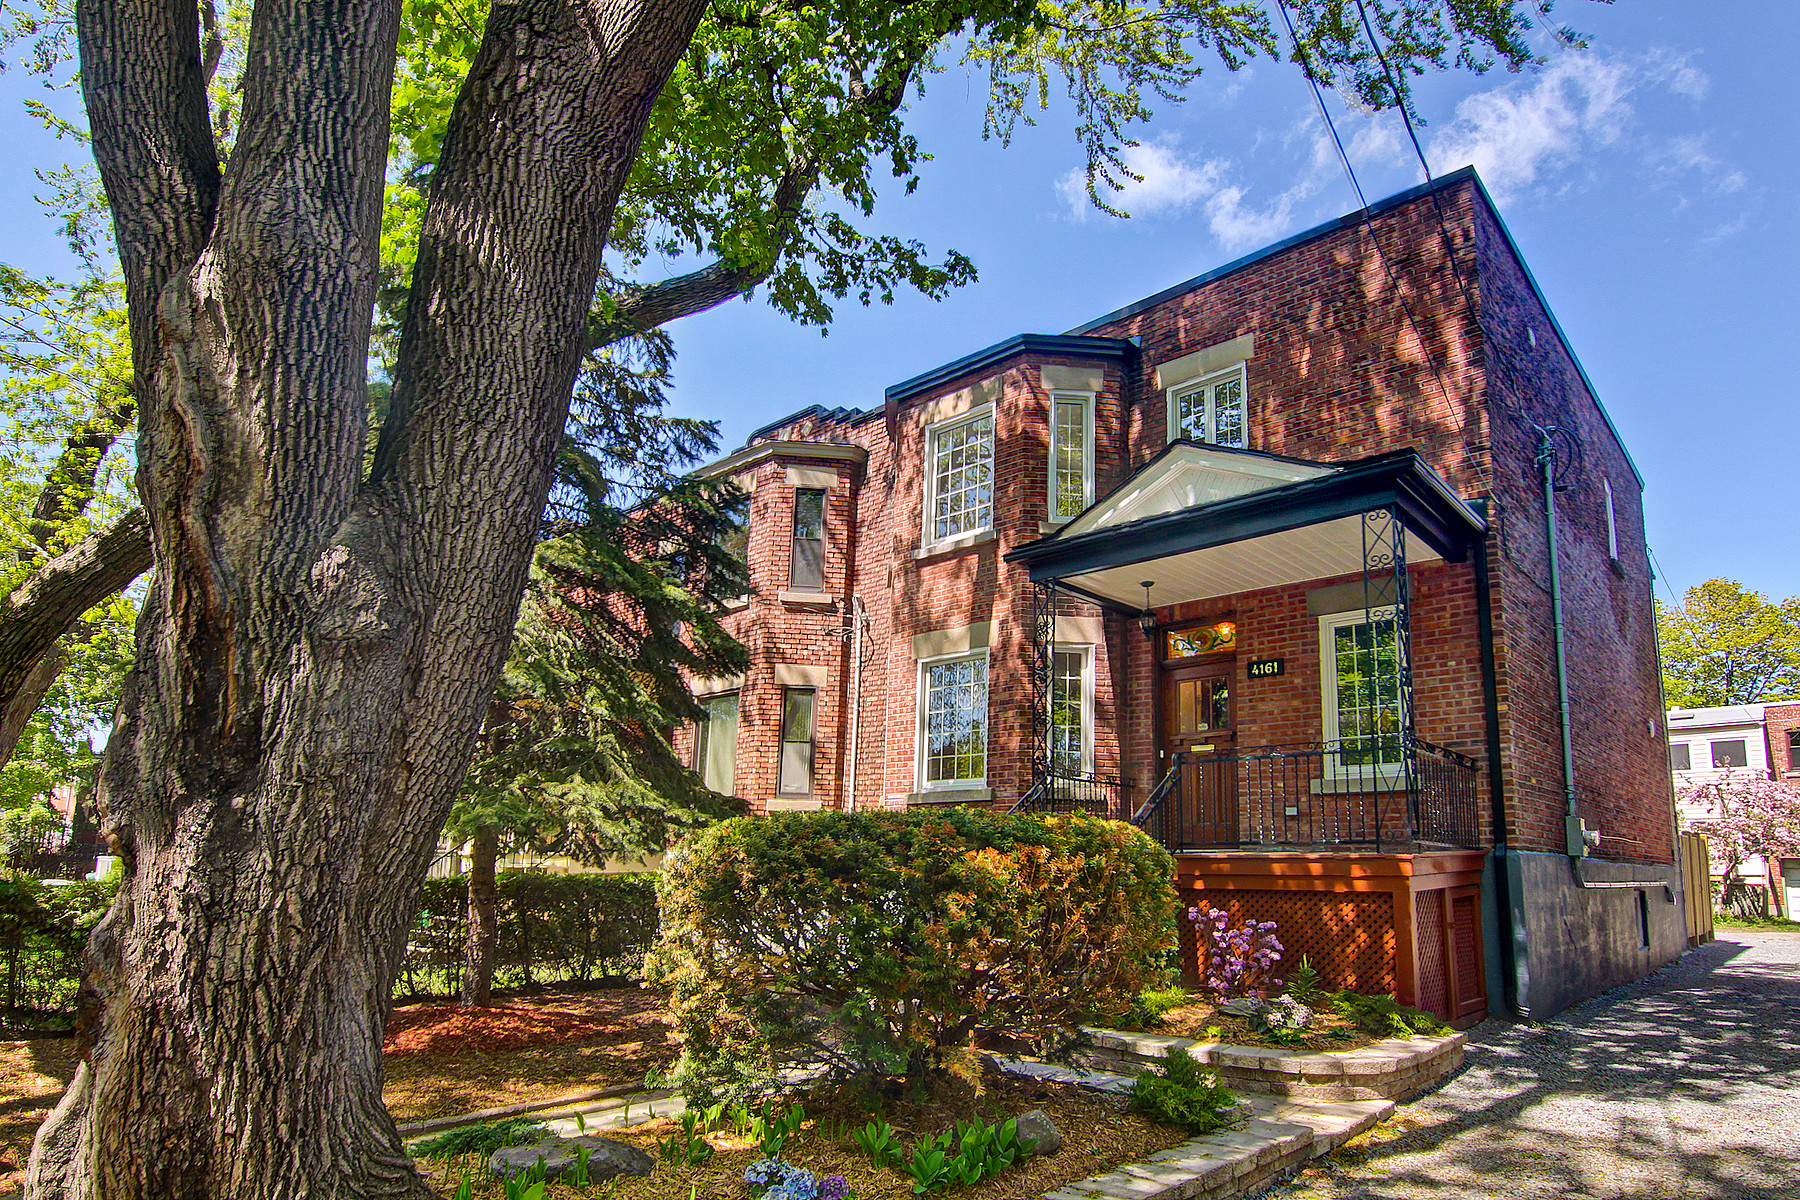 Single Family Home for Sale at Côte-des-Neiges / Notre-Dame-de-Grâce (Montréal), Montréal 4161 Av. Beaconsfield Montreal, Quebec H4A2H4 Canada